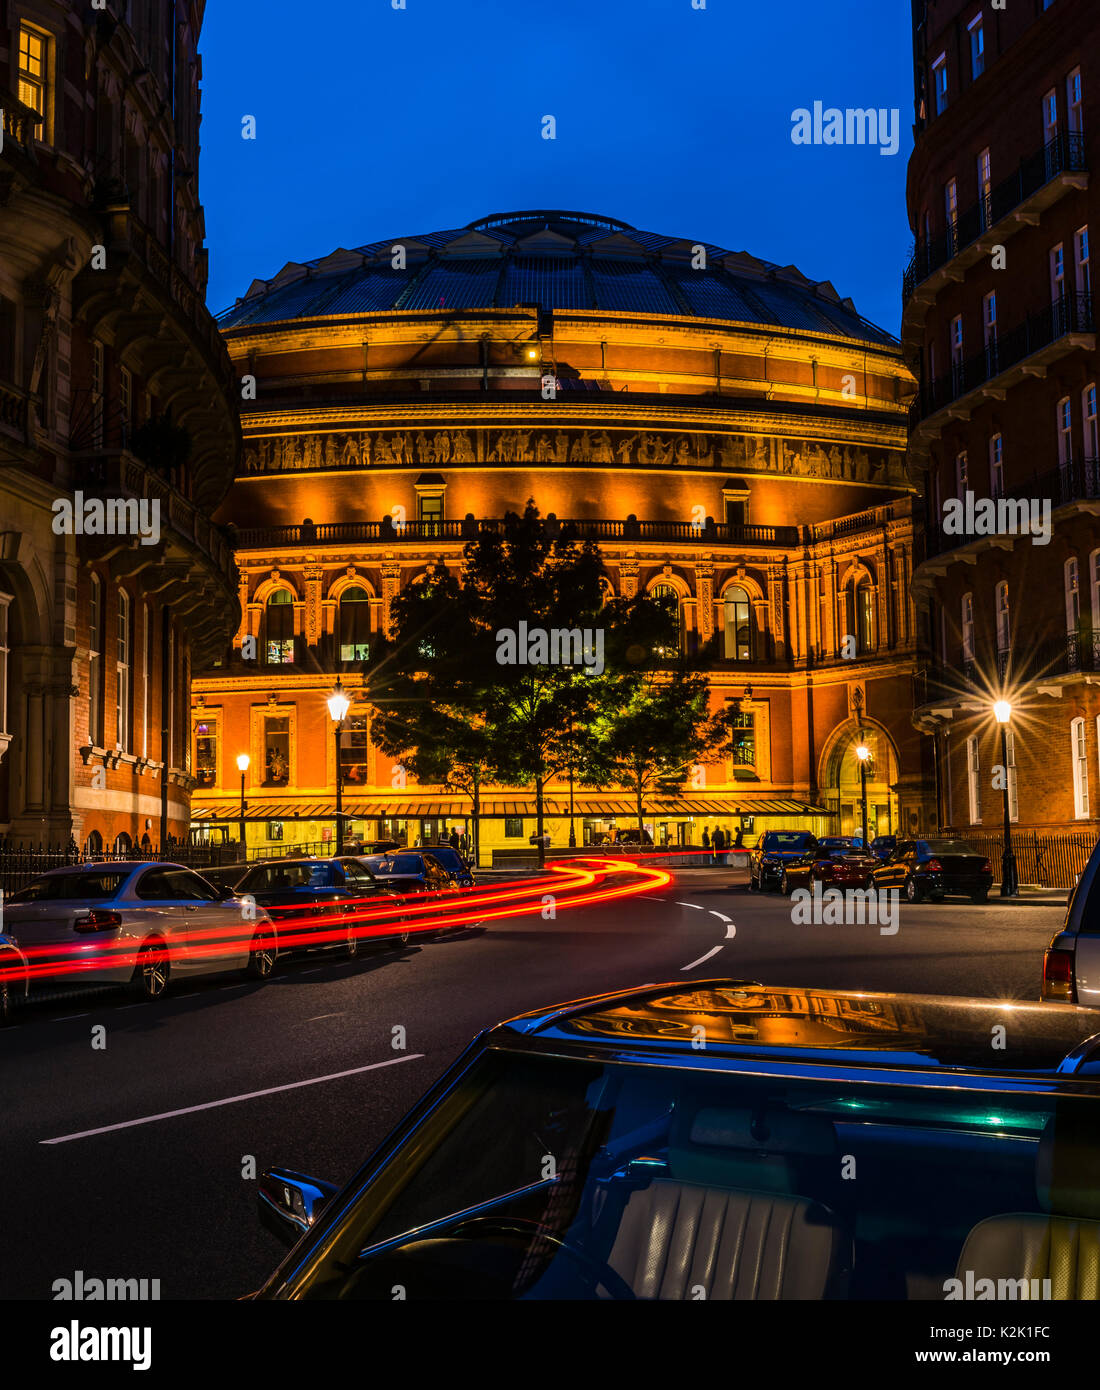 Lights around the Royal Albert Hall at dusk, London, UK - Stock Image